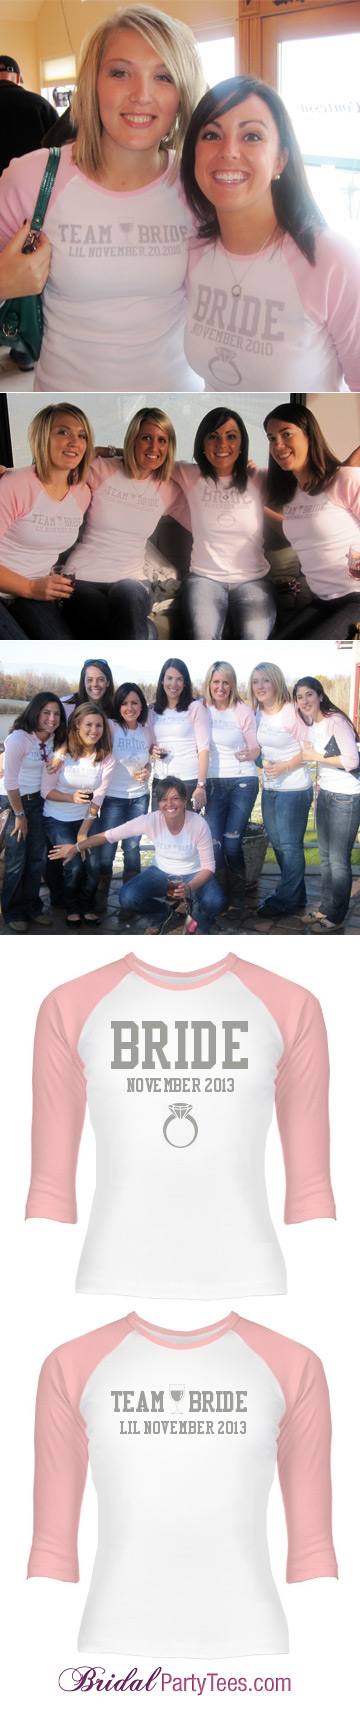 Team Bride Baseball Shirt